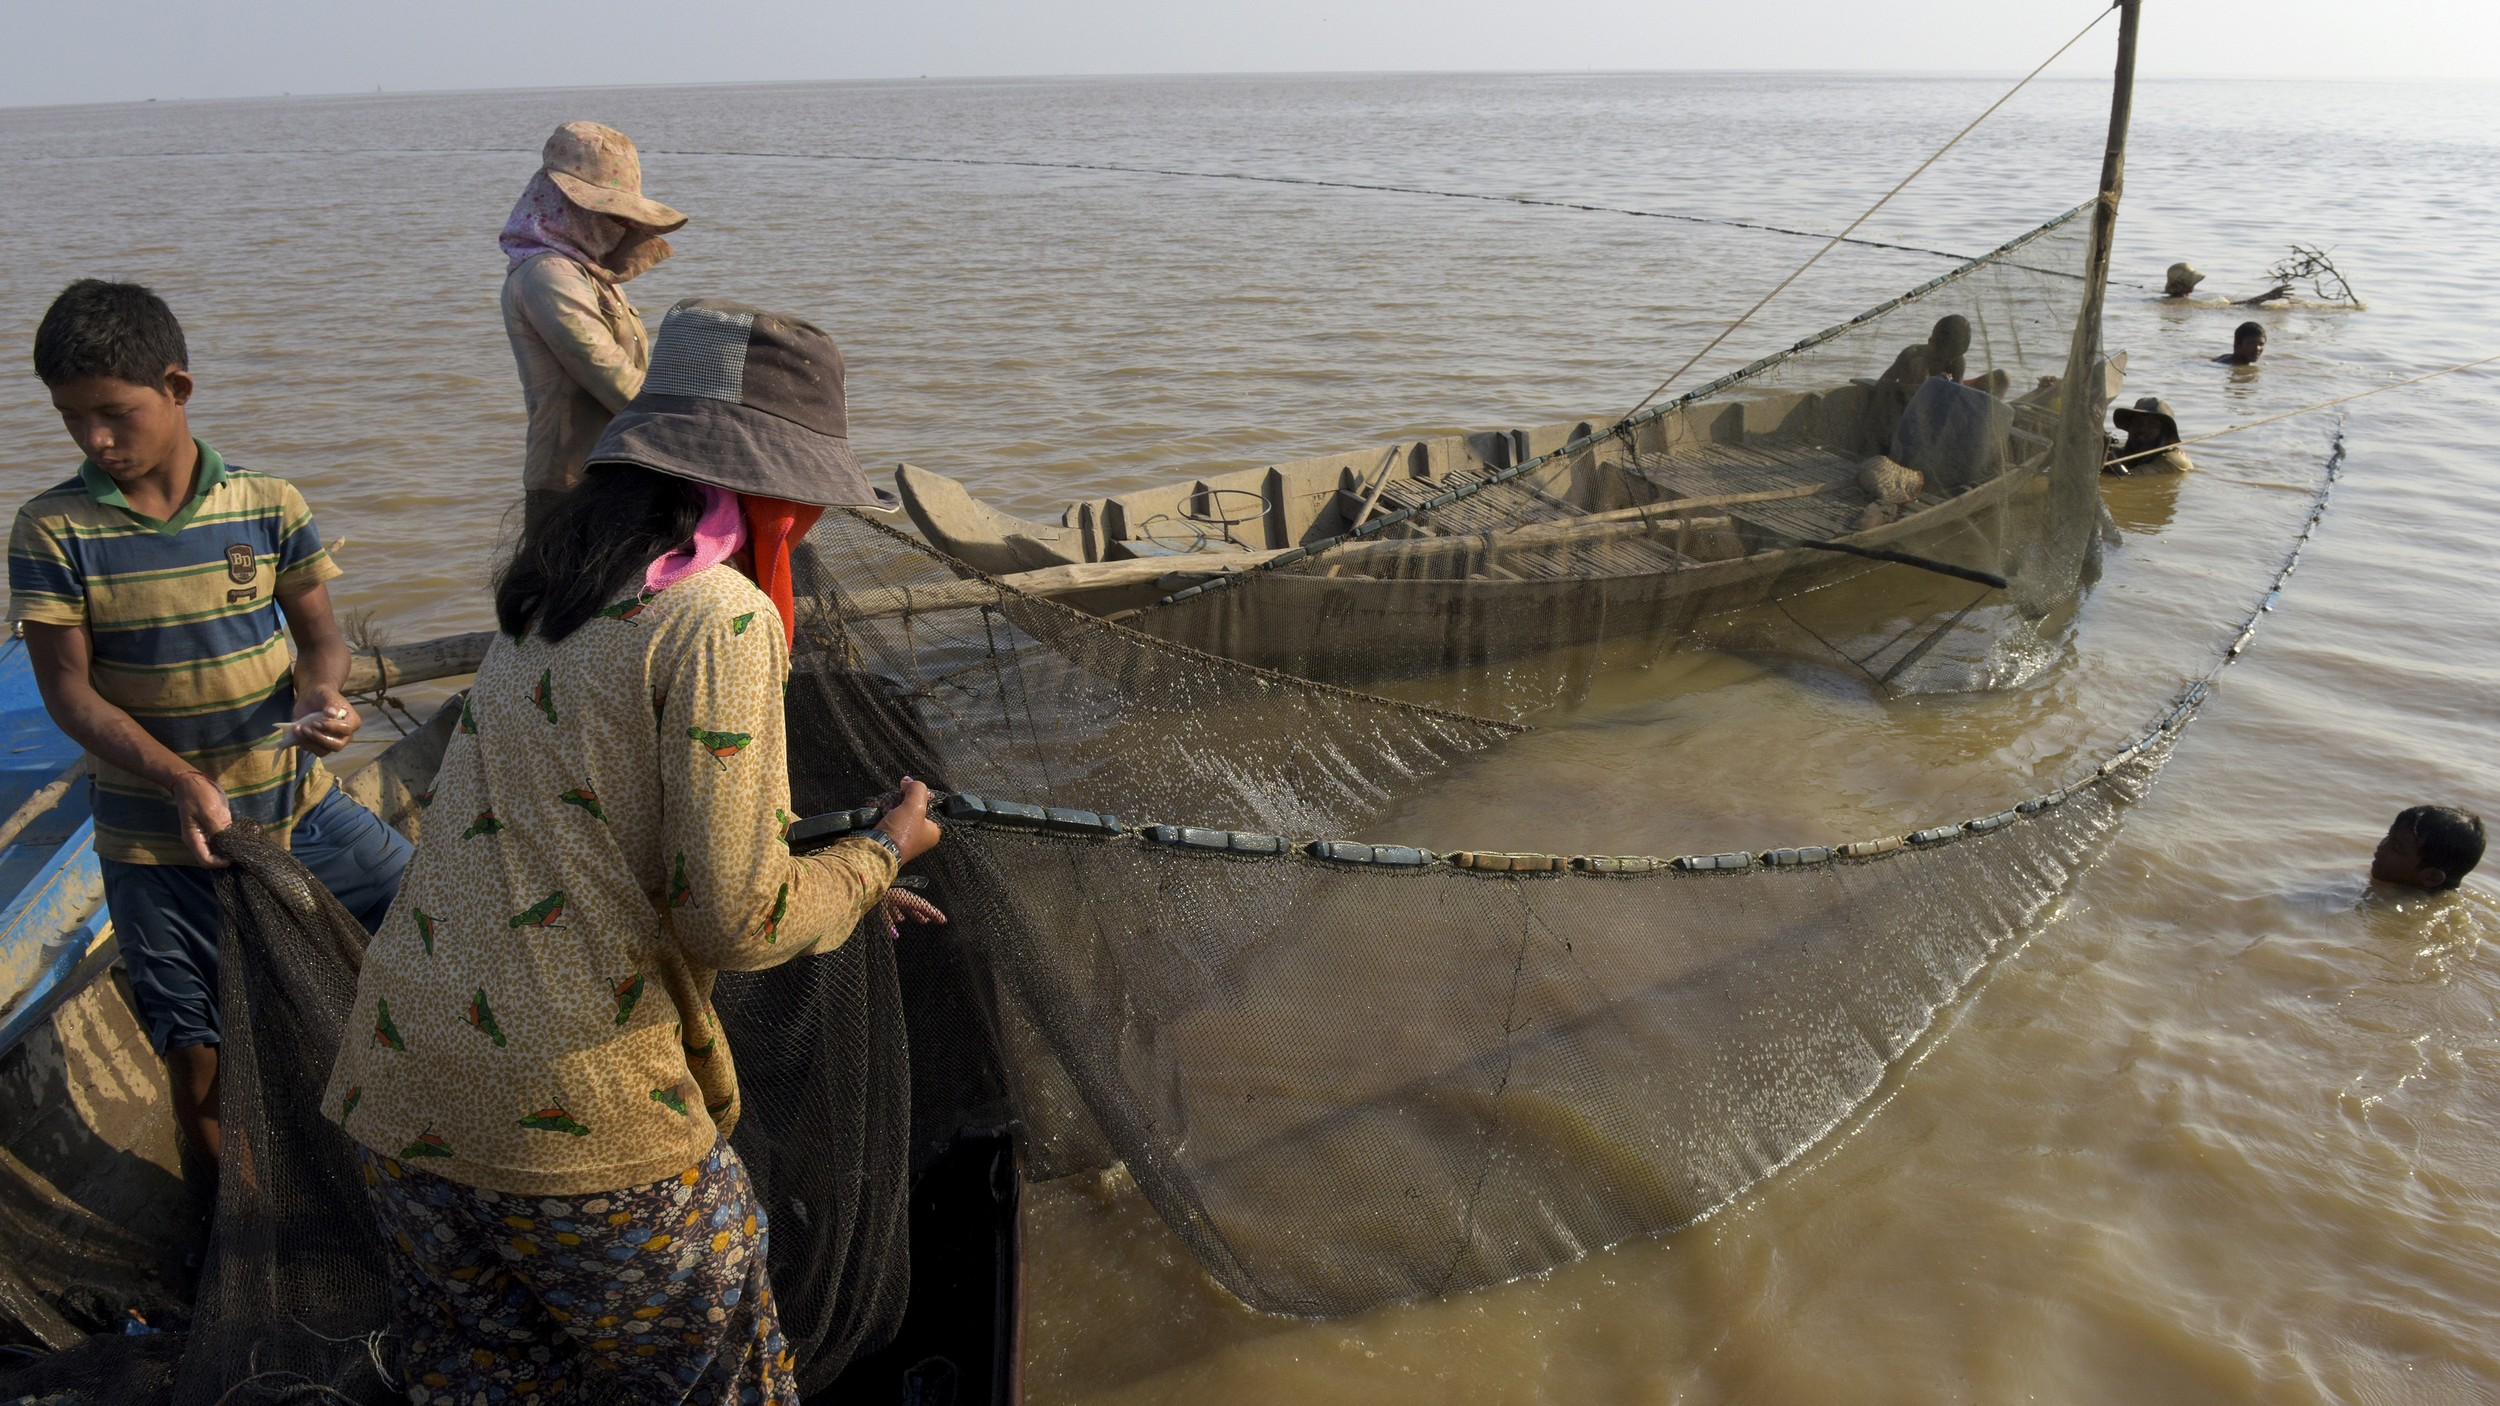 Villagers pull up a fishing net on the Tonle Sap Lake in Siem Reap, in a file photo.